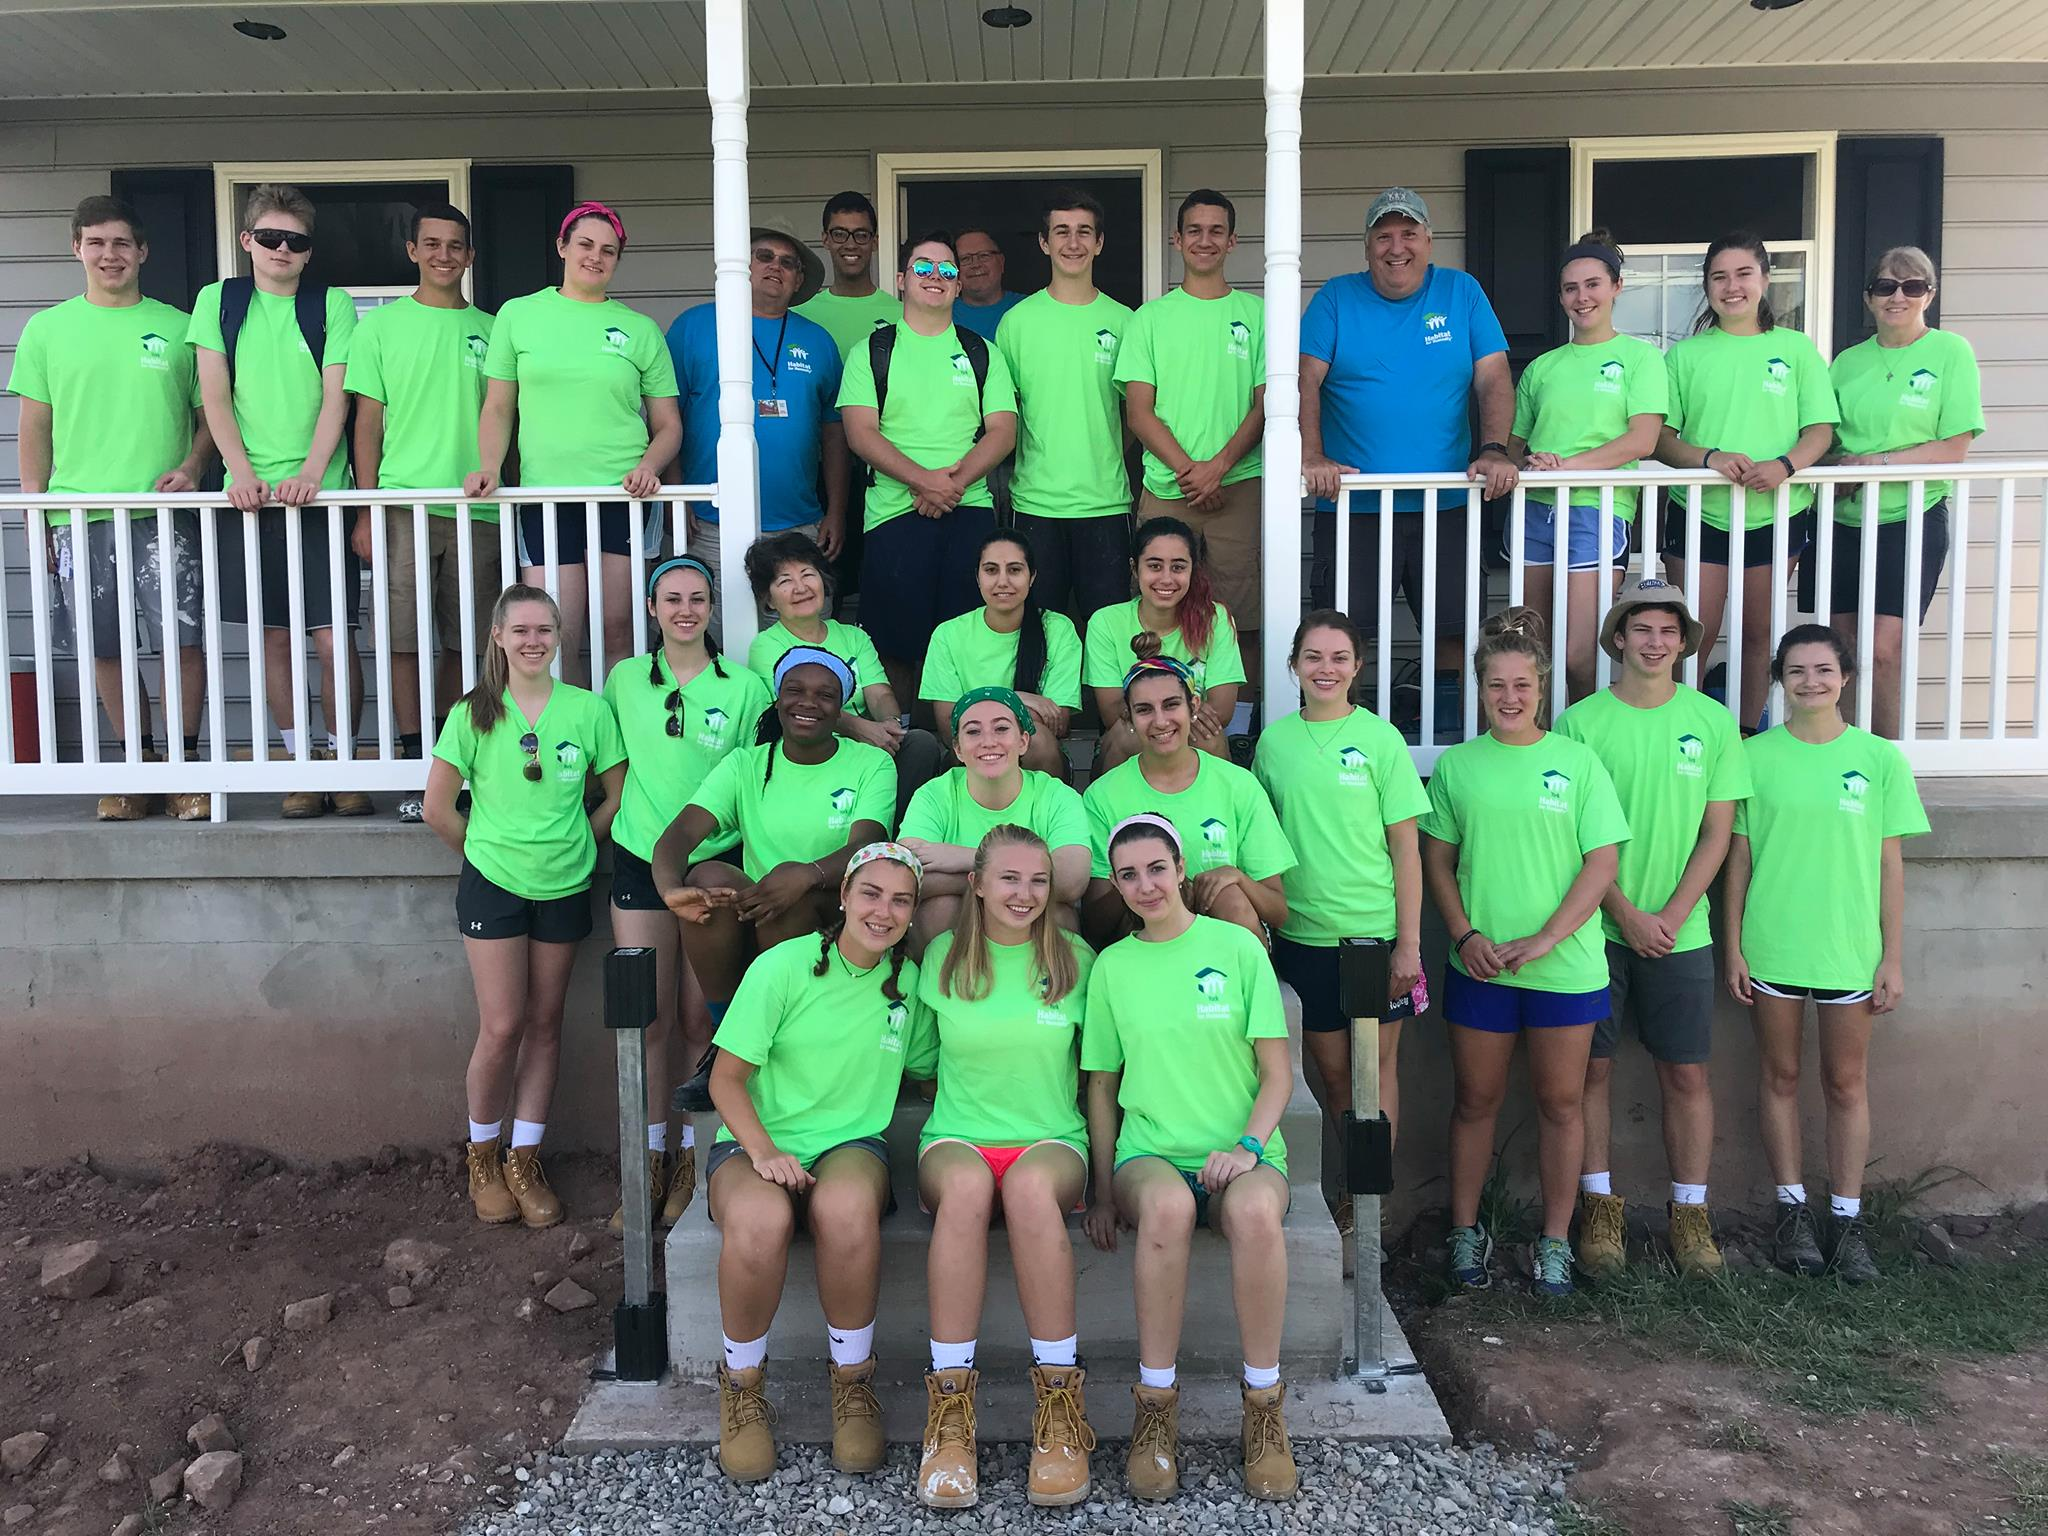 Habitat for Humanity Work Camp for High School Students 2020 Dates TBA!